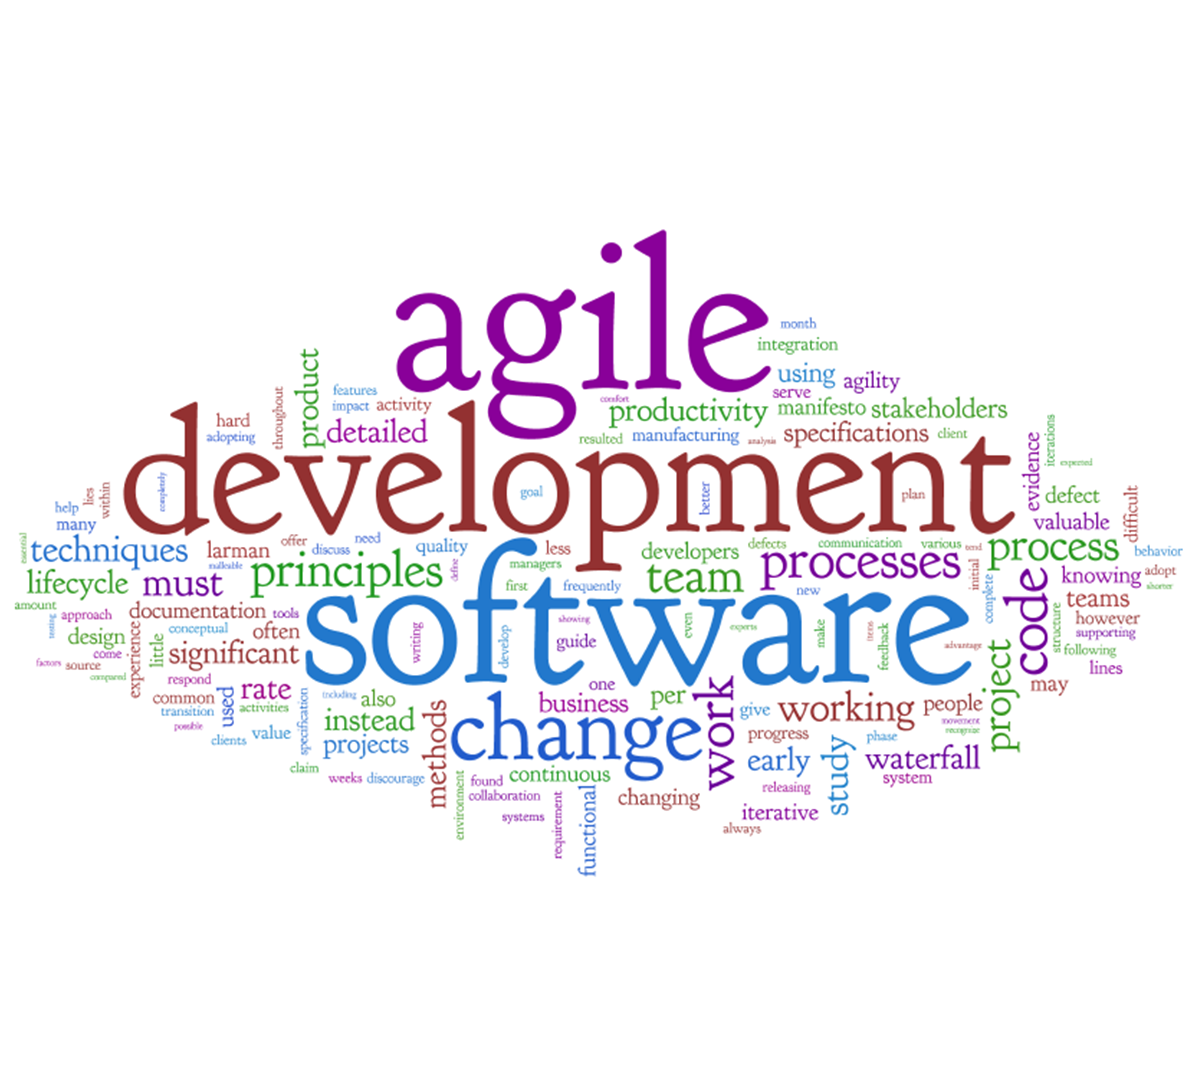 http://arksstech.com/wp-content/upload/2018/06/agile.png